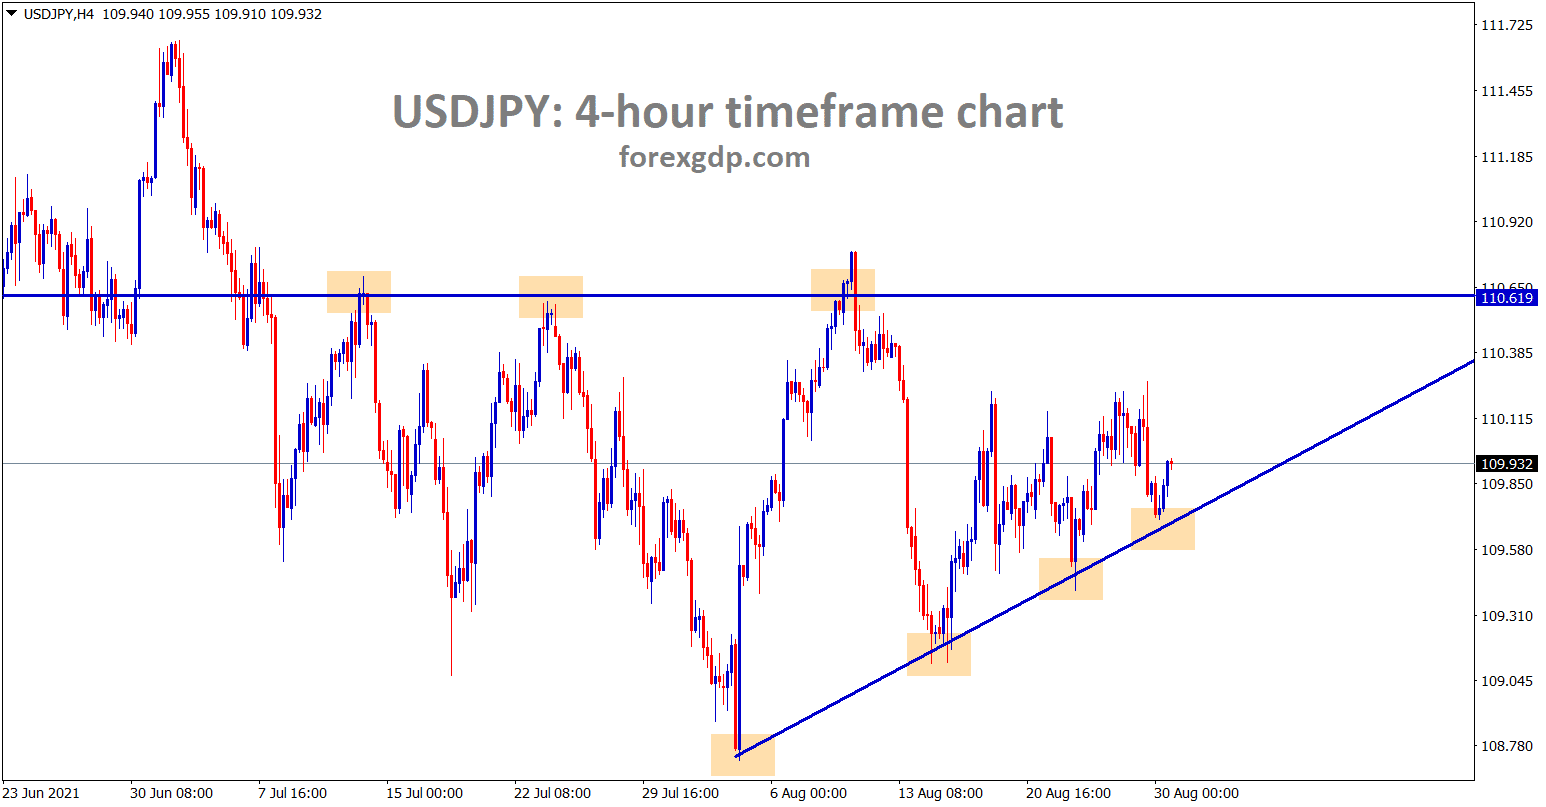 USDJPY is moving between the Ascending triangle pattern